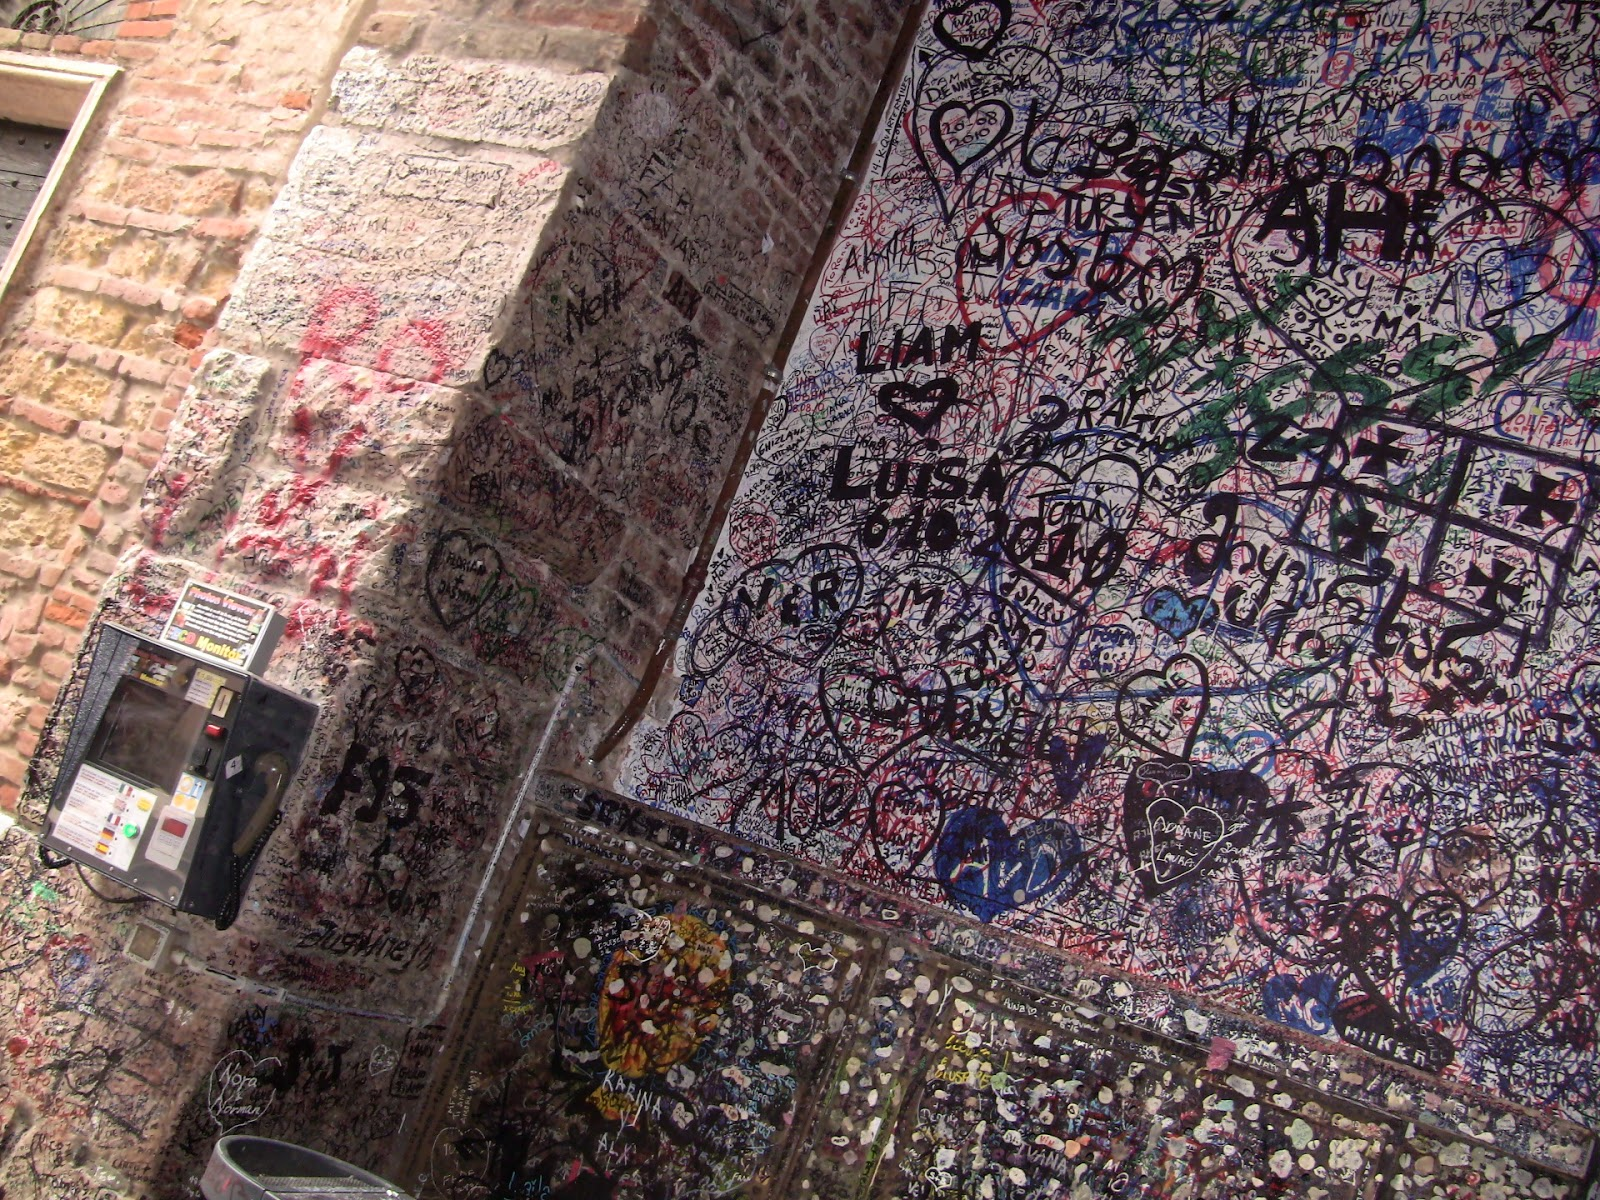 Letters to Juliet scribbled on the courtyard wall. Photo: Gail Keller, WineTrekkerTV.com.